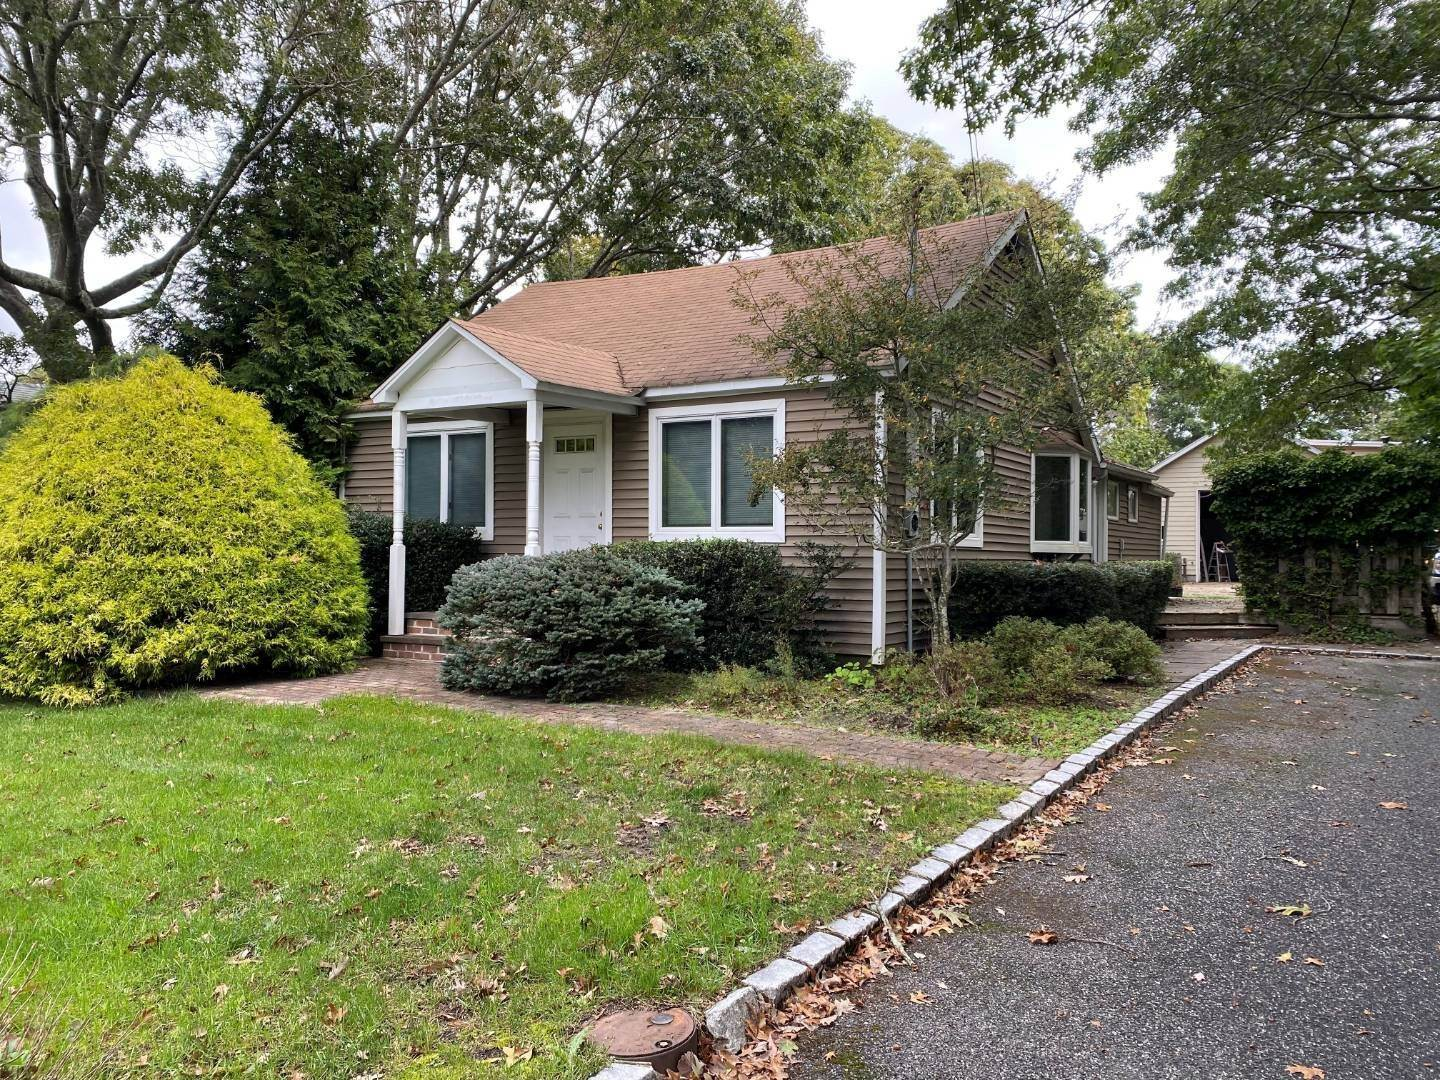 Single Family Home for Sale at Unigue Opportunity 46 Peters Ln, Quiogue, NY 11978